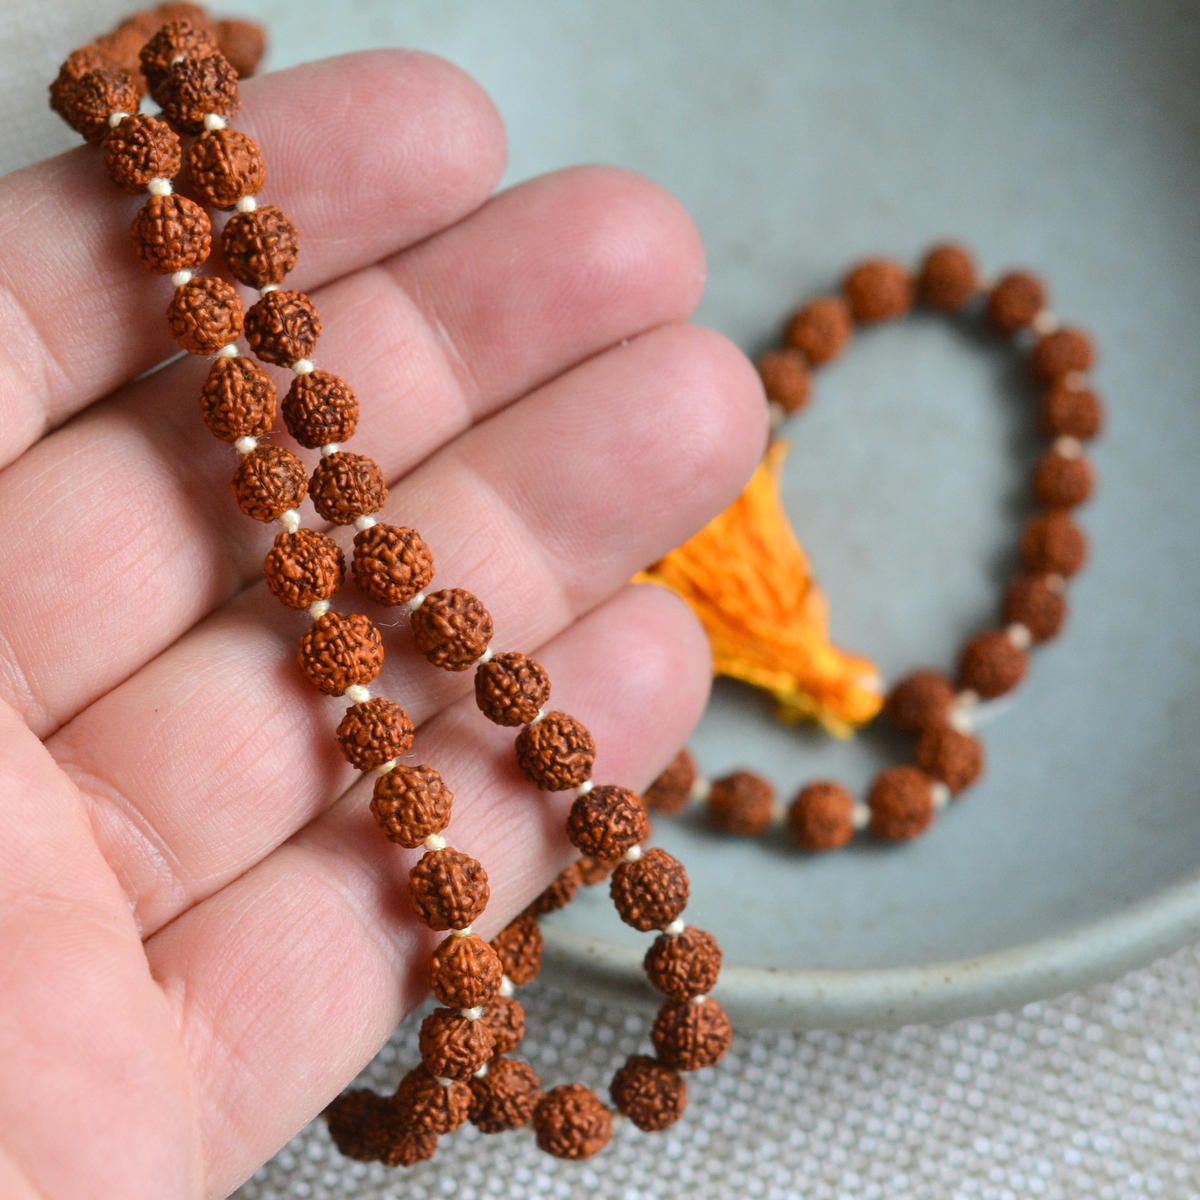 44+ How to use rudraksha beads ideas in 2021